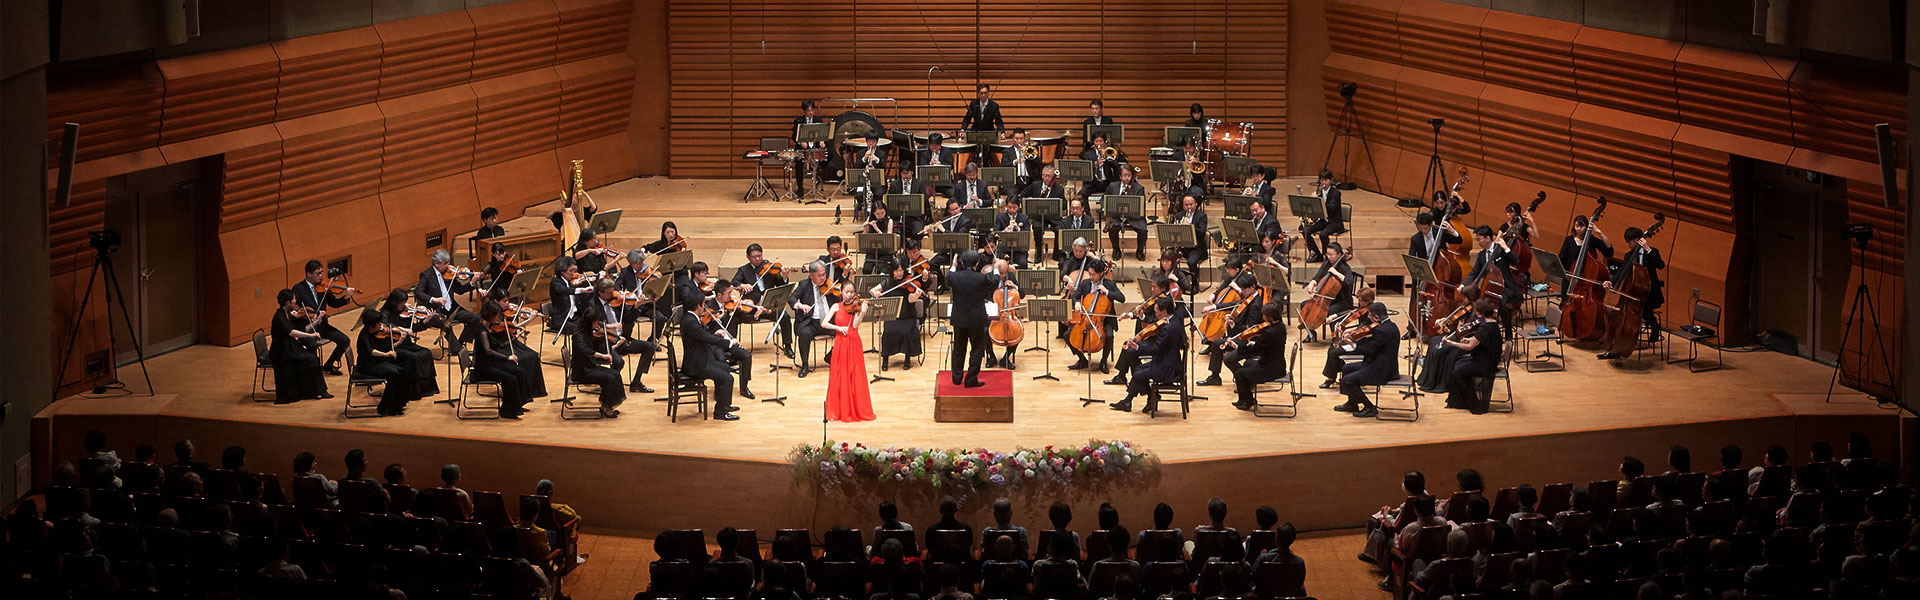 The 7th SIMC Highest Ranked Prizewinners' Recital Shannon LEE Violin Recital in Tokyo | Sendai International Music Competition Official Website